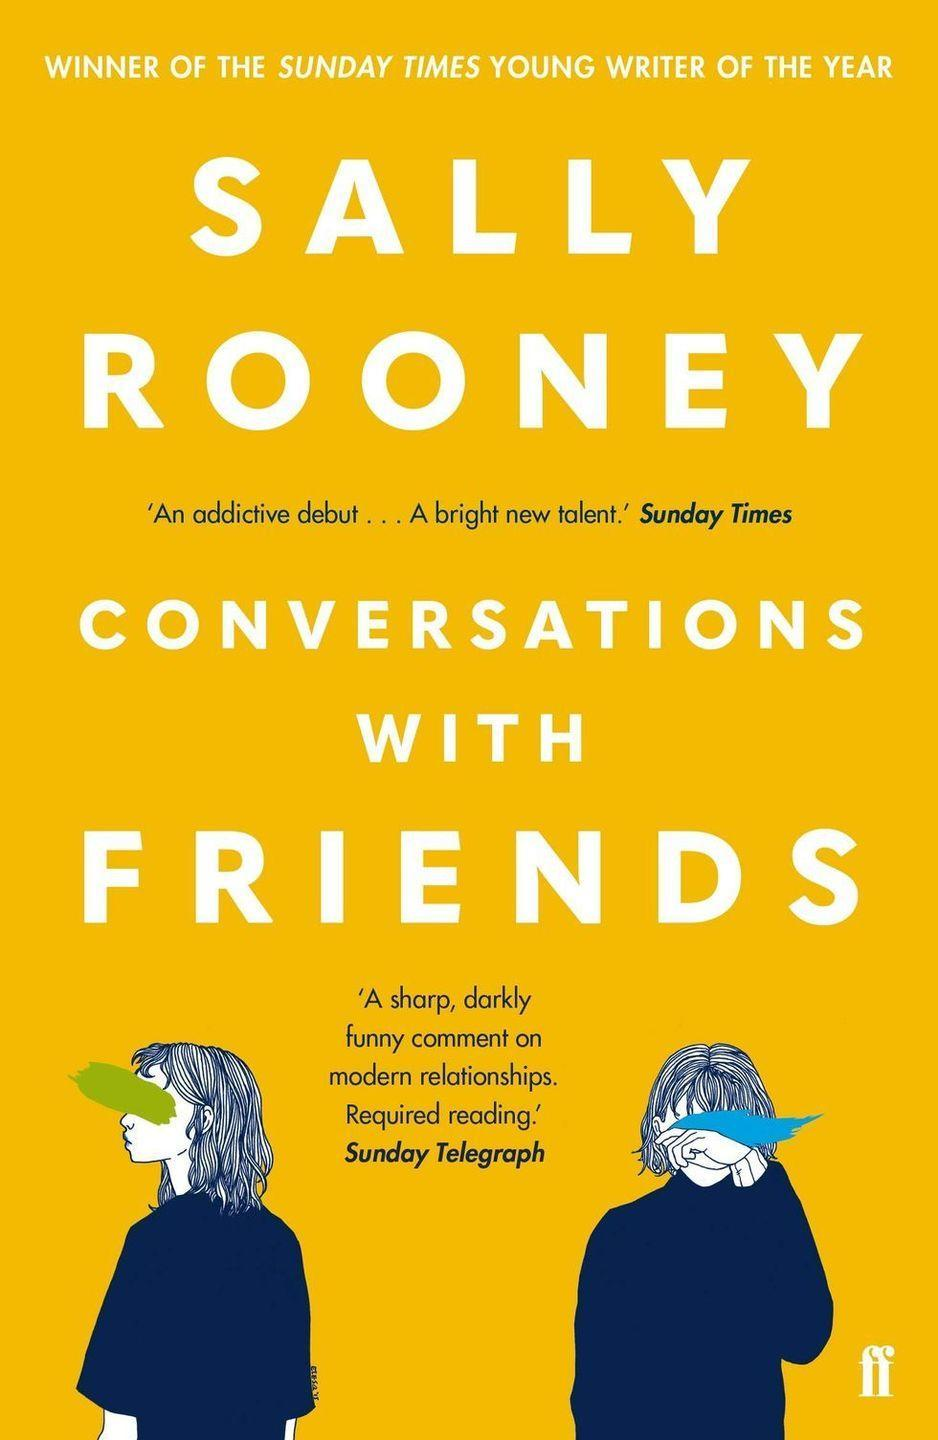 <p><strong>Release date: 2021 on BBC Three</strong></p><p>The creative masterminds behind Normal People are now developing Sally Rooney's first novel, Conversations with Friends, for the BBC.</p><p>Conversations with Friends is also set in Dublin and explores the nuances and complexities of relationships. Following the four main characters – Frances, Bobbi, Nick and Melissa – as their lives and loves become intertwined with devastating results.<br></p>